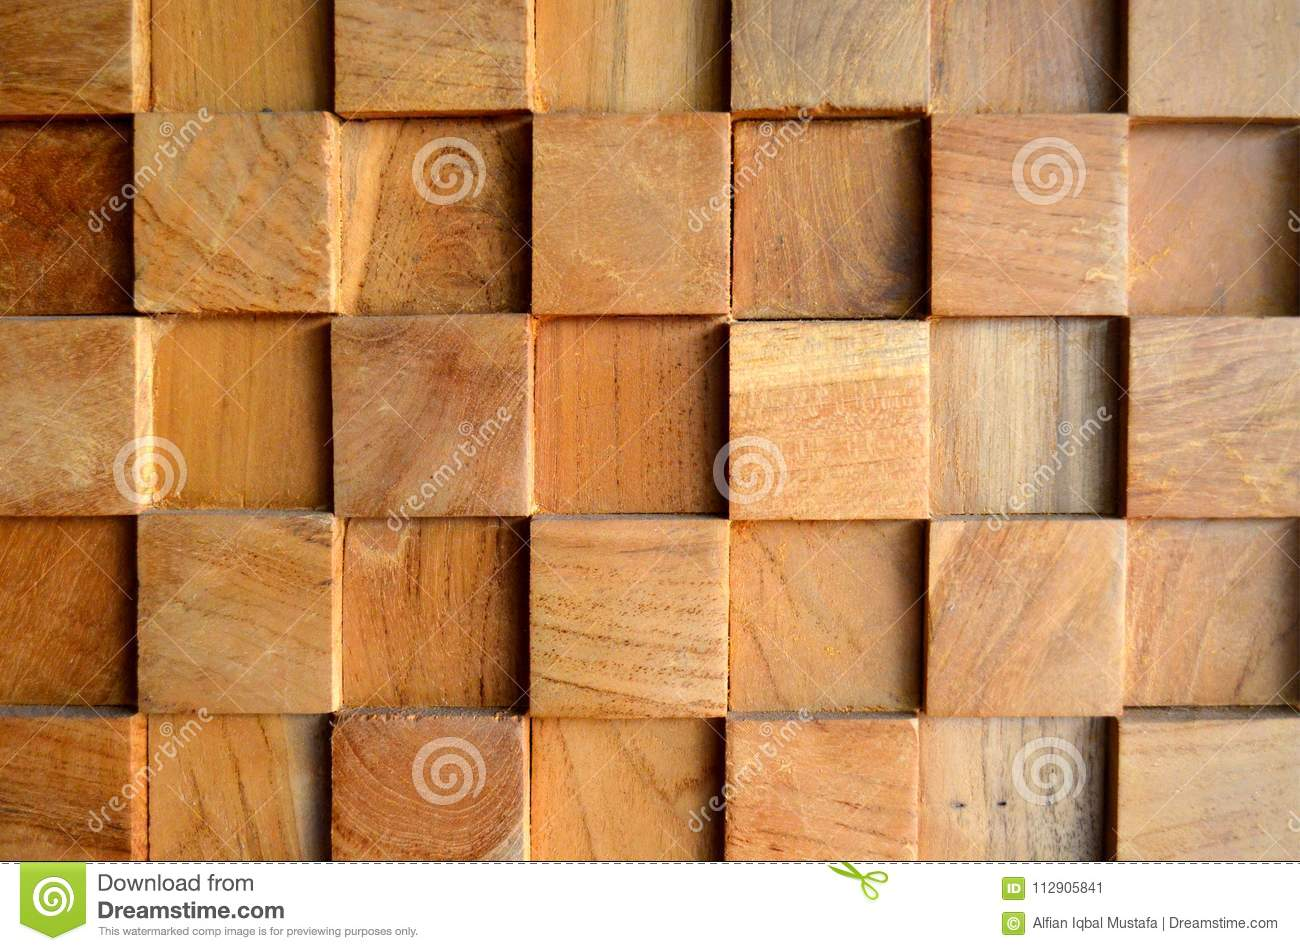 Tiled Old Teak Wood Texture Wall Background For Design And